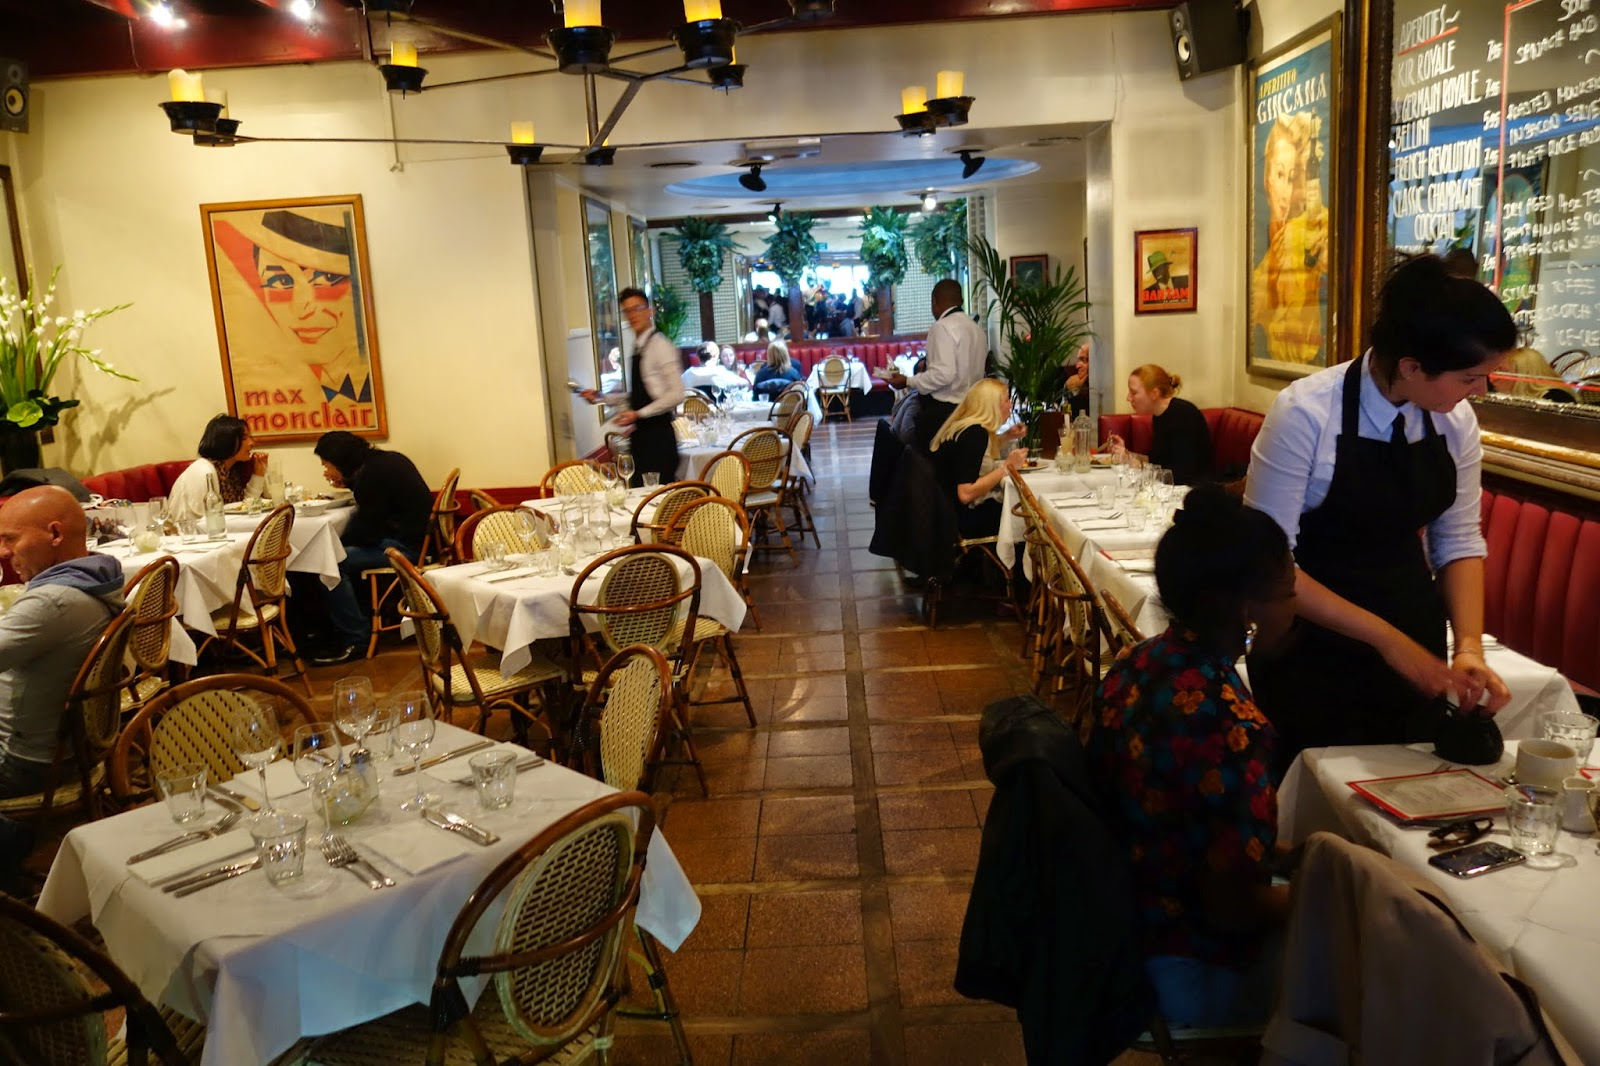 french brasserie chairs poang chair covers silverspoon london - a luxury lifestyle and travel blog : palm court you can't beat ...